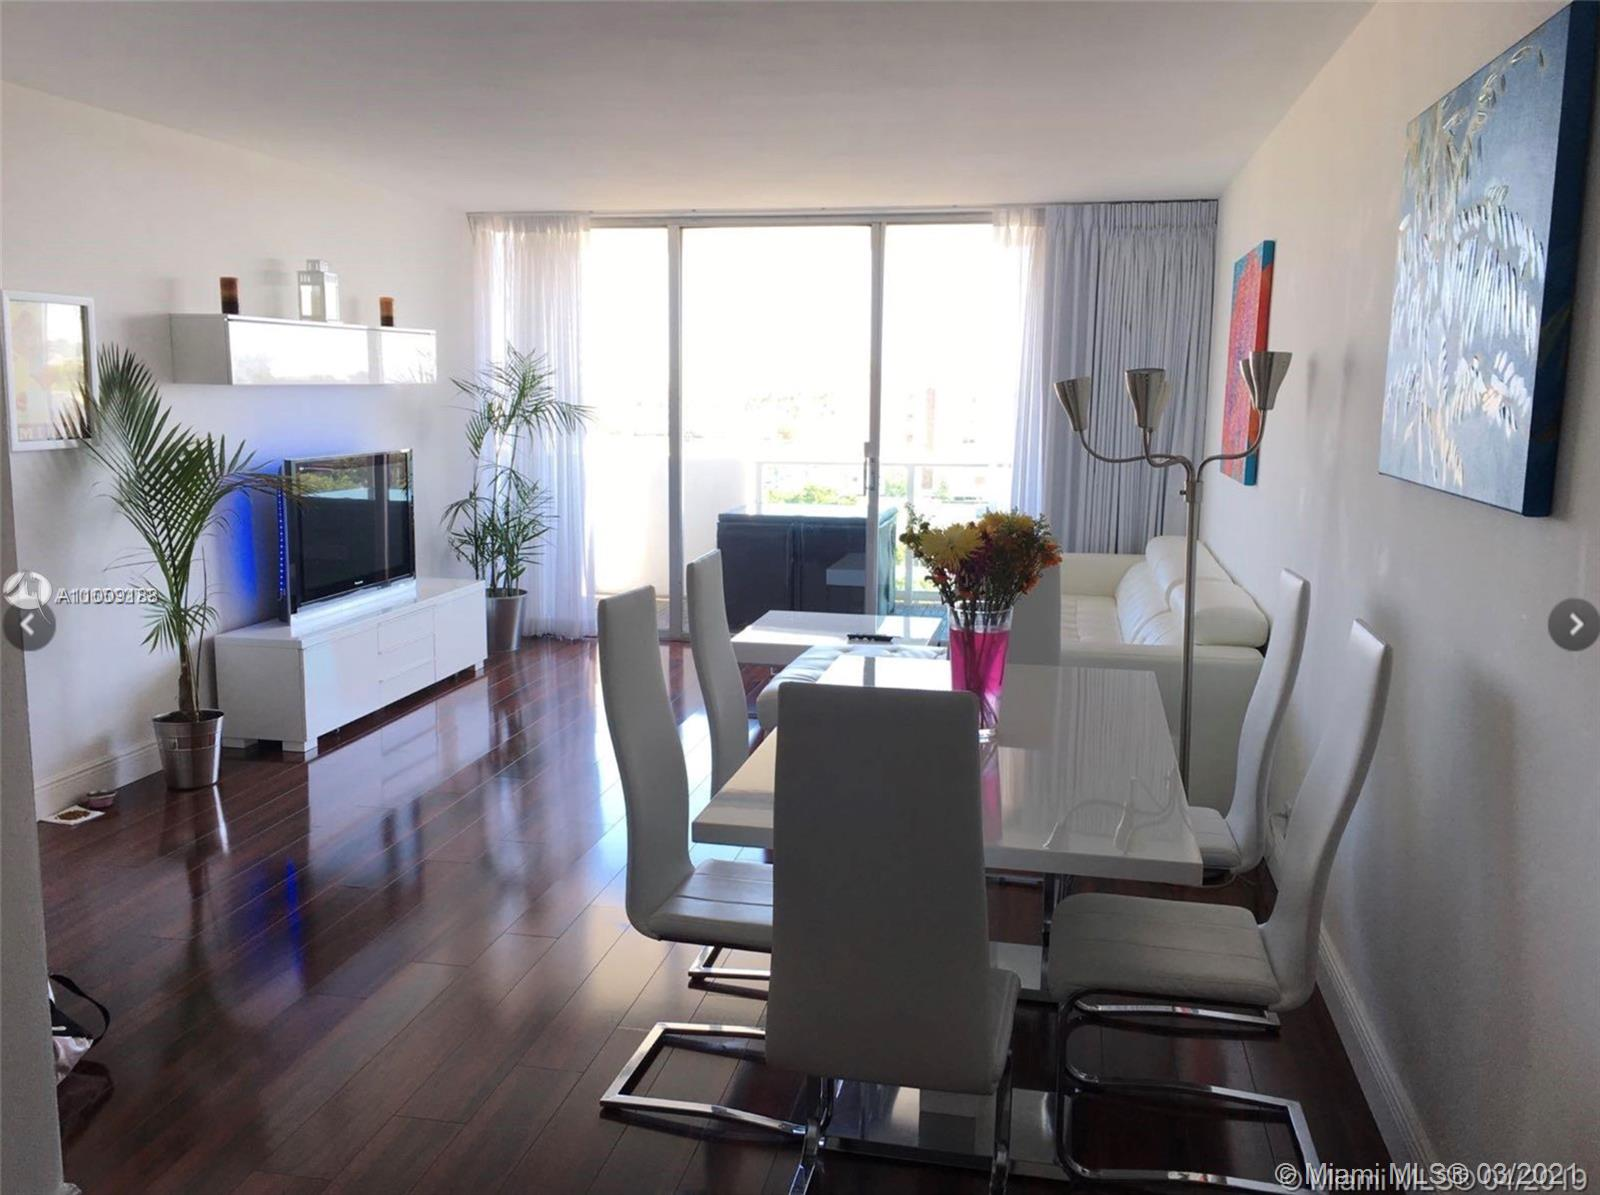 Georgeous huge 1 bedroom apartment in the desirable Mirador South. Brazilian cherry flooring all over, large terrace, lots of light. New kitchen and new bathroom. Great investment opportunity! New windows of impact. Special assessment $ 300 per month.